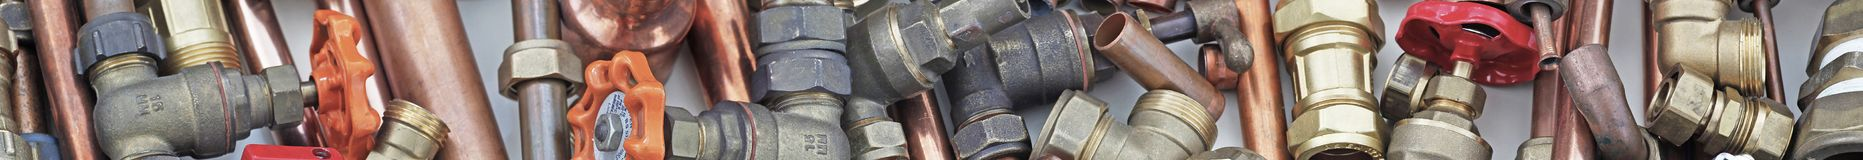 Plumber`s pipes and fittings website banner Royalty Free Stock Photography